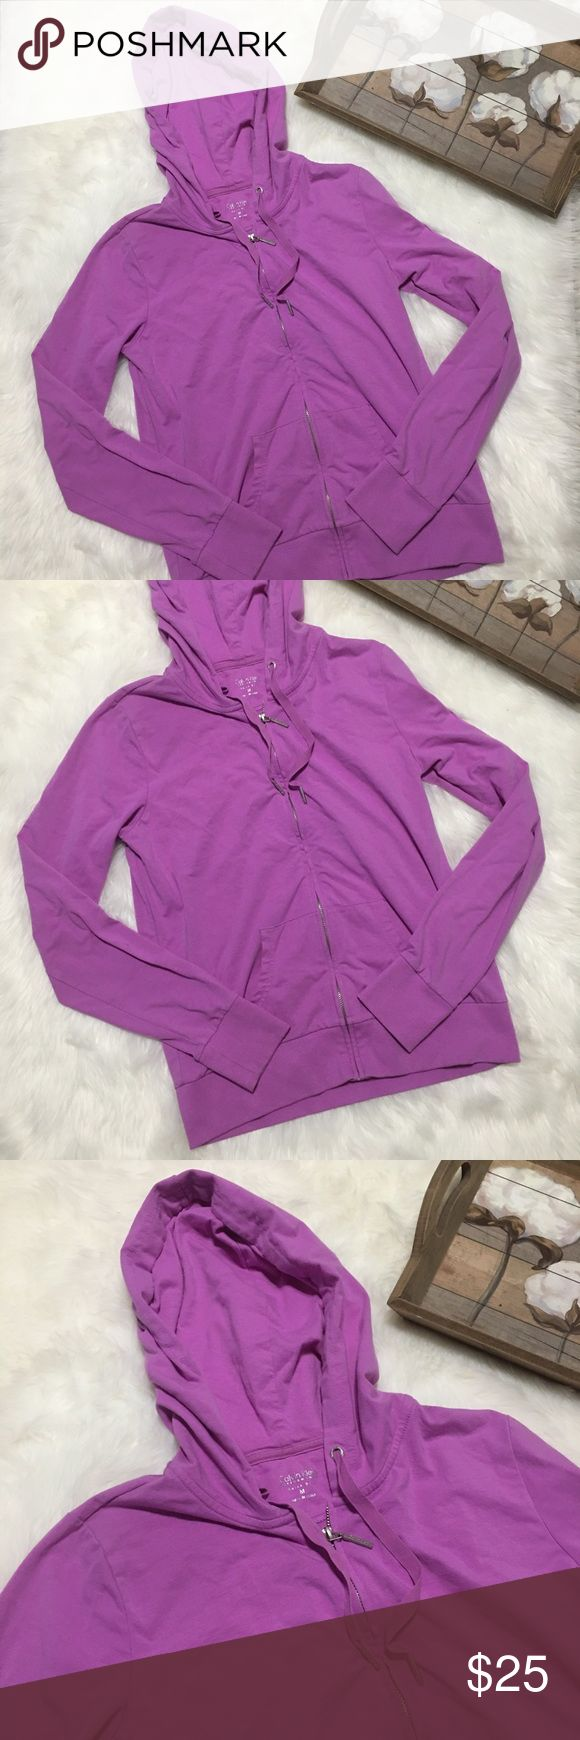 Calvin Klein Purple Zip Up Hoodie Sweater Sz M Stunning Calvin Klein hoodie sweater Zip Up size medium in excellent condition! Calvin Klein Tops Sweatshirts & Hoodies